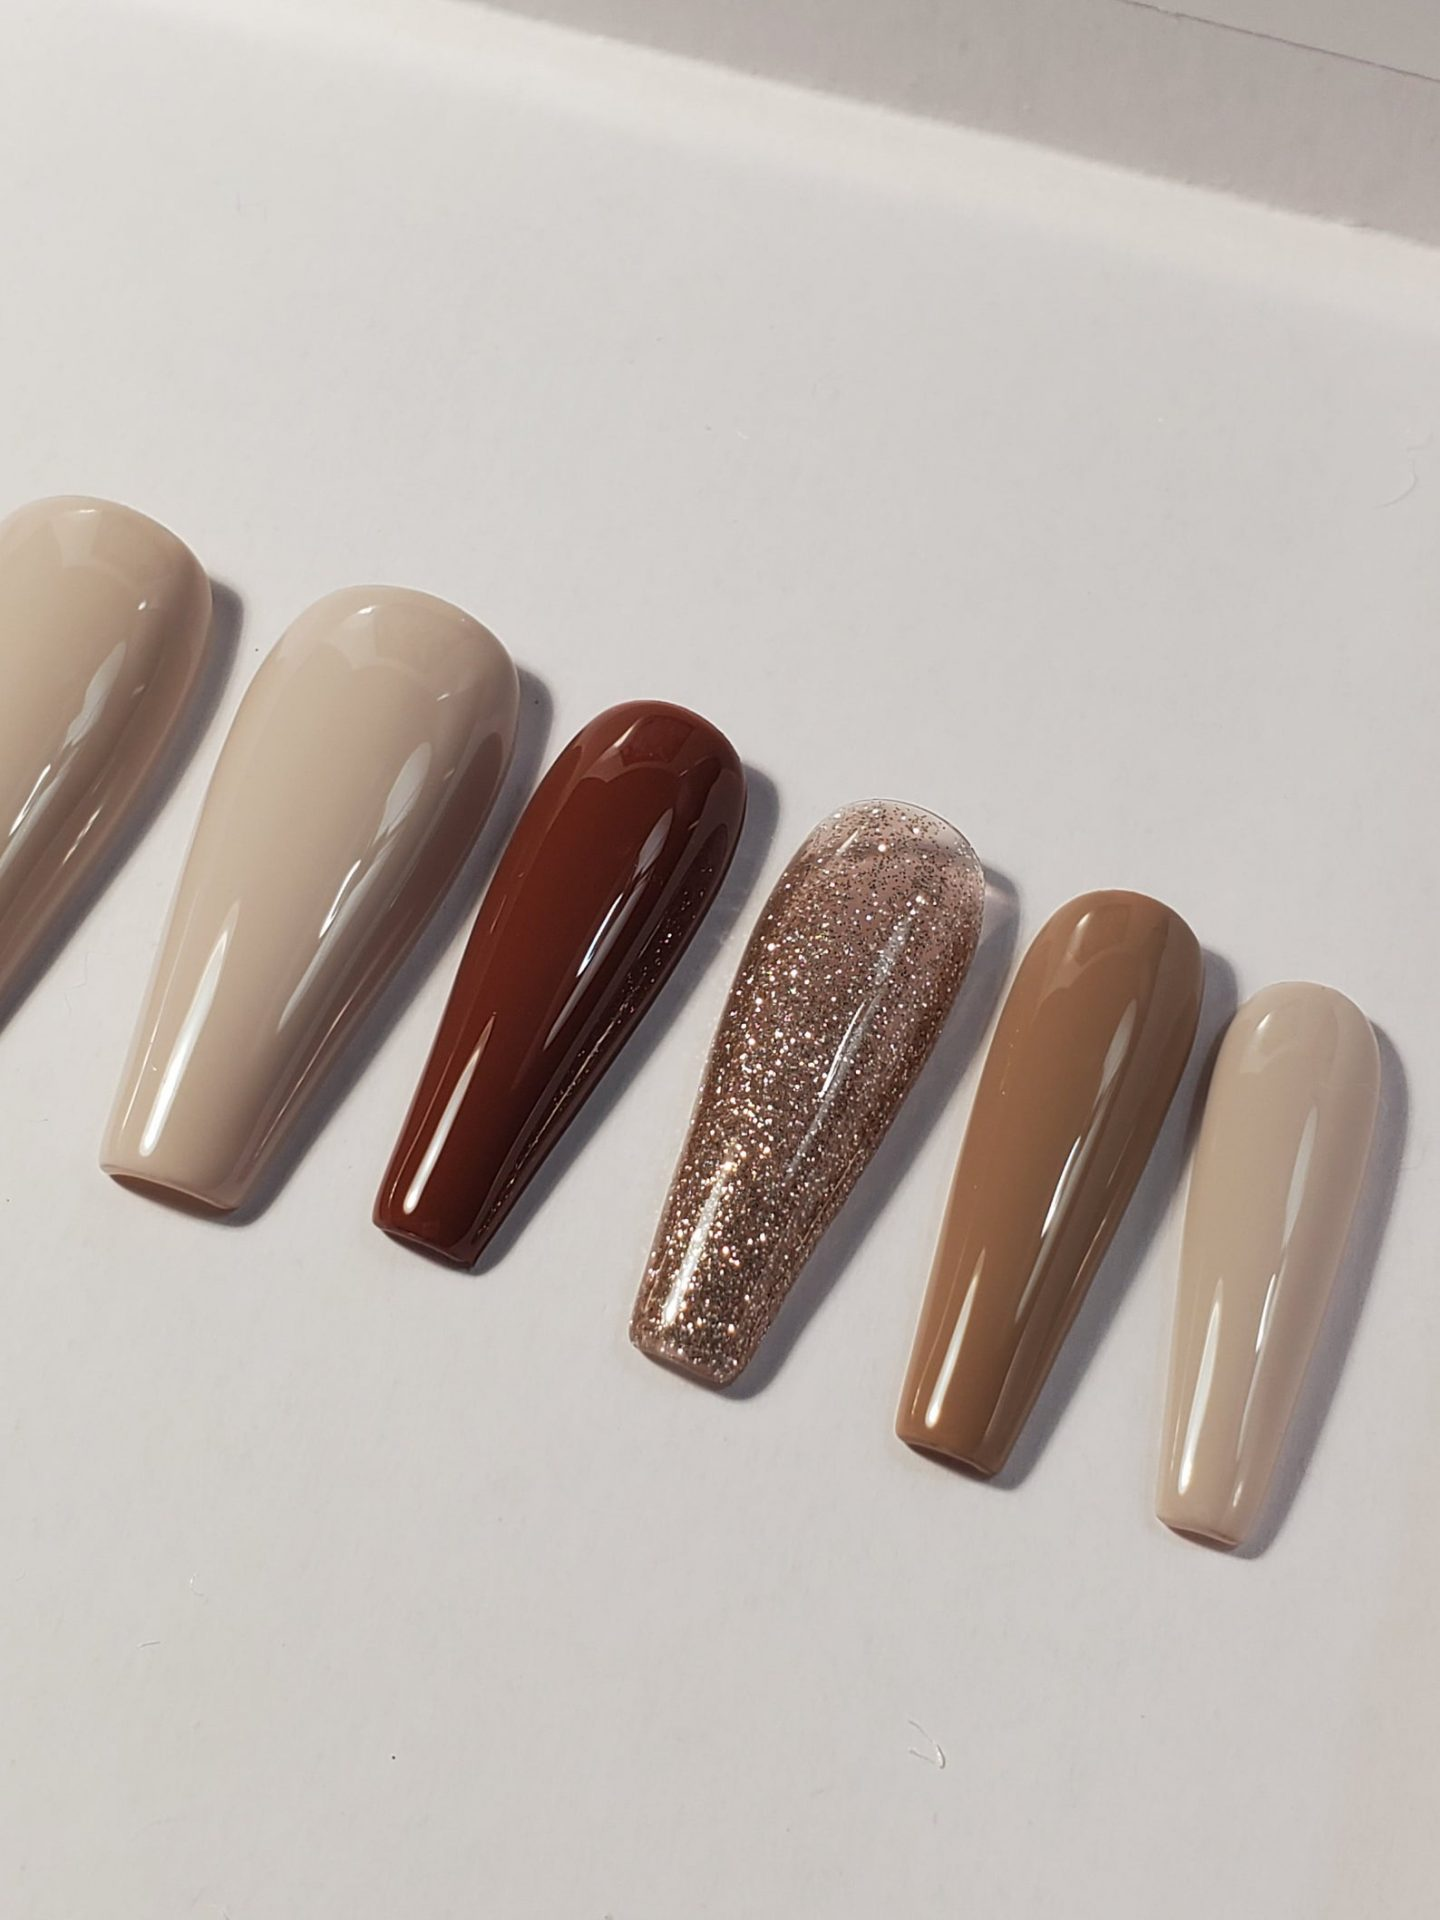 Light and dark brown ombre nails with glitter